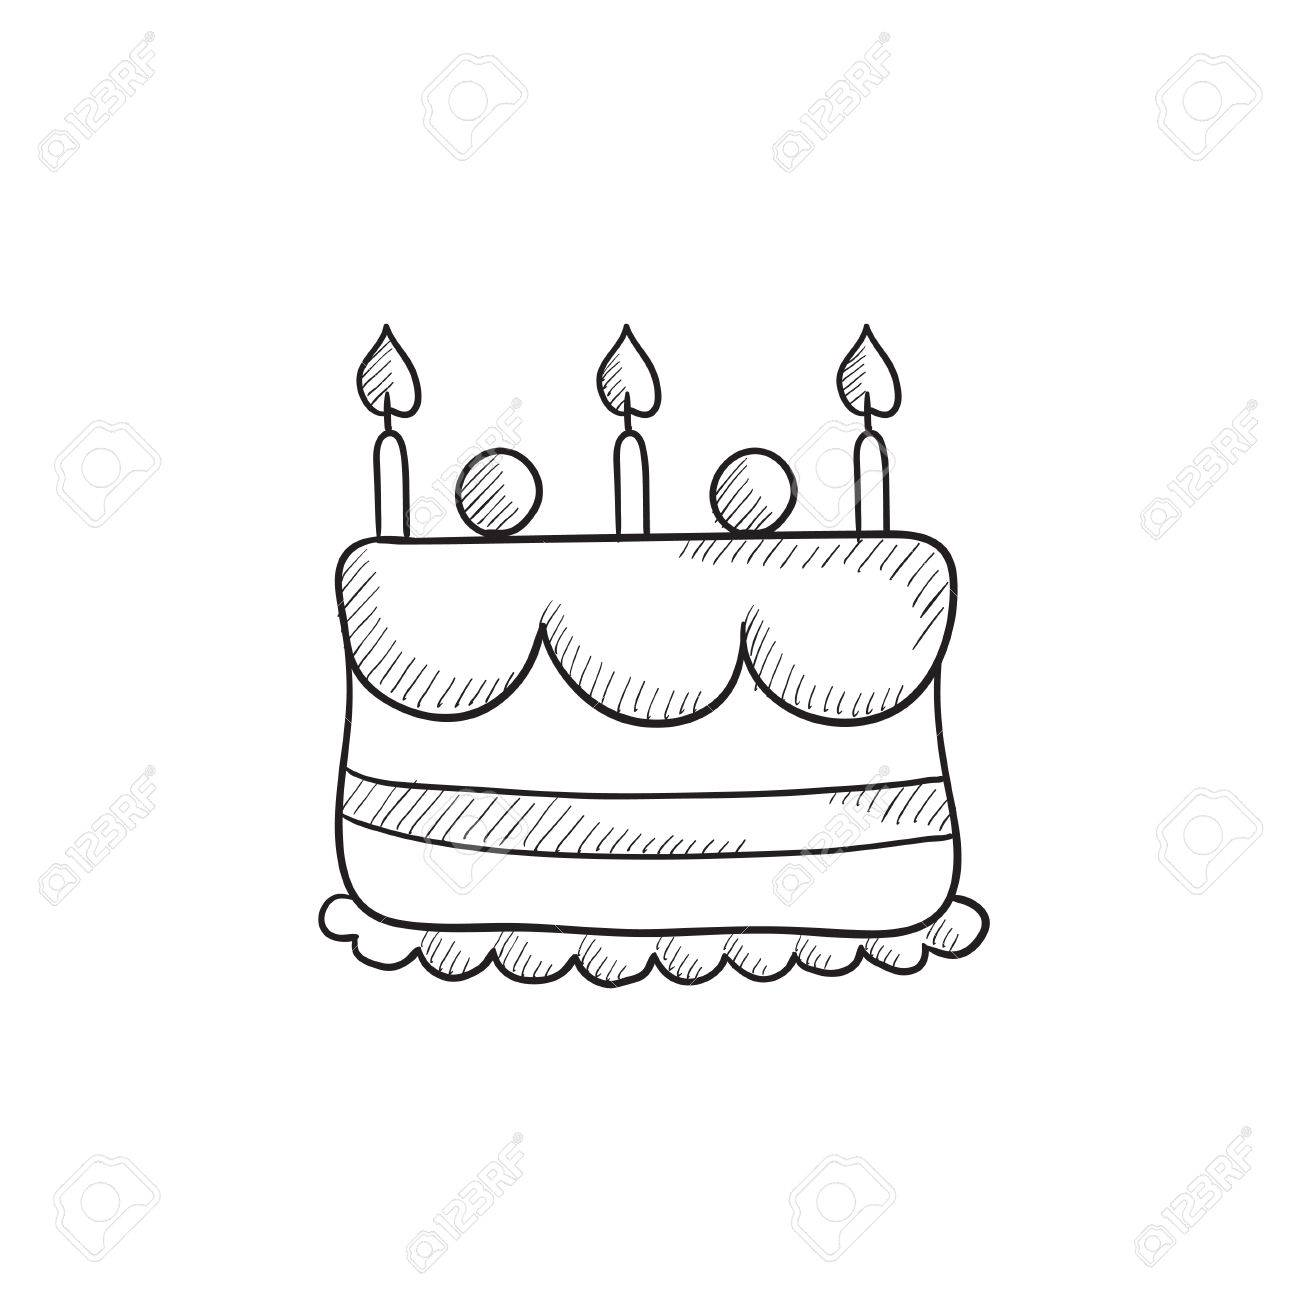 1300x1300 Birthday Cake With Candles Vector Sketch Icon Isolated